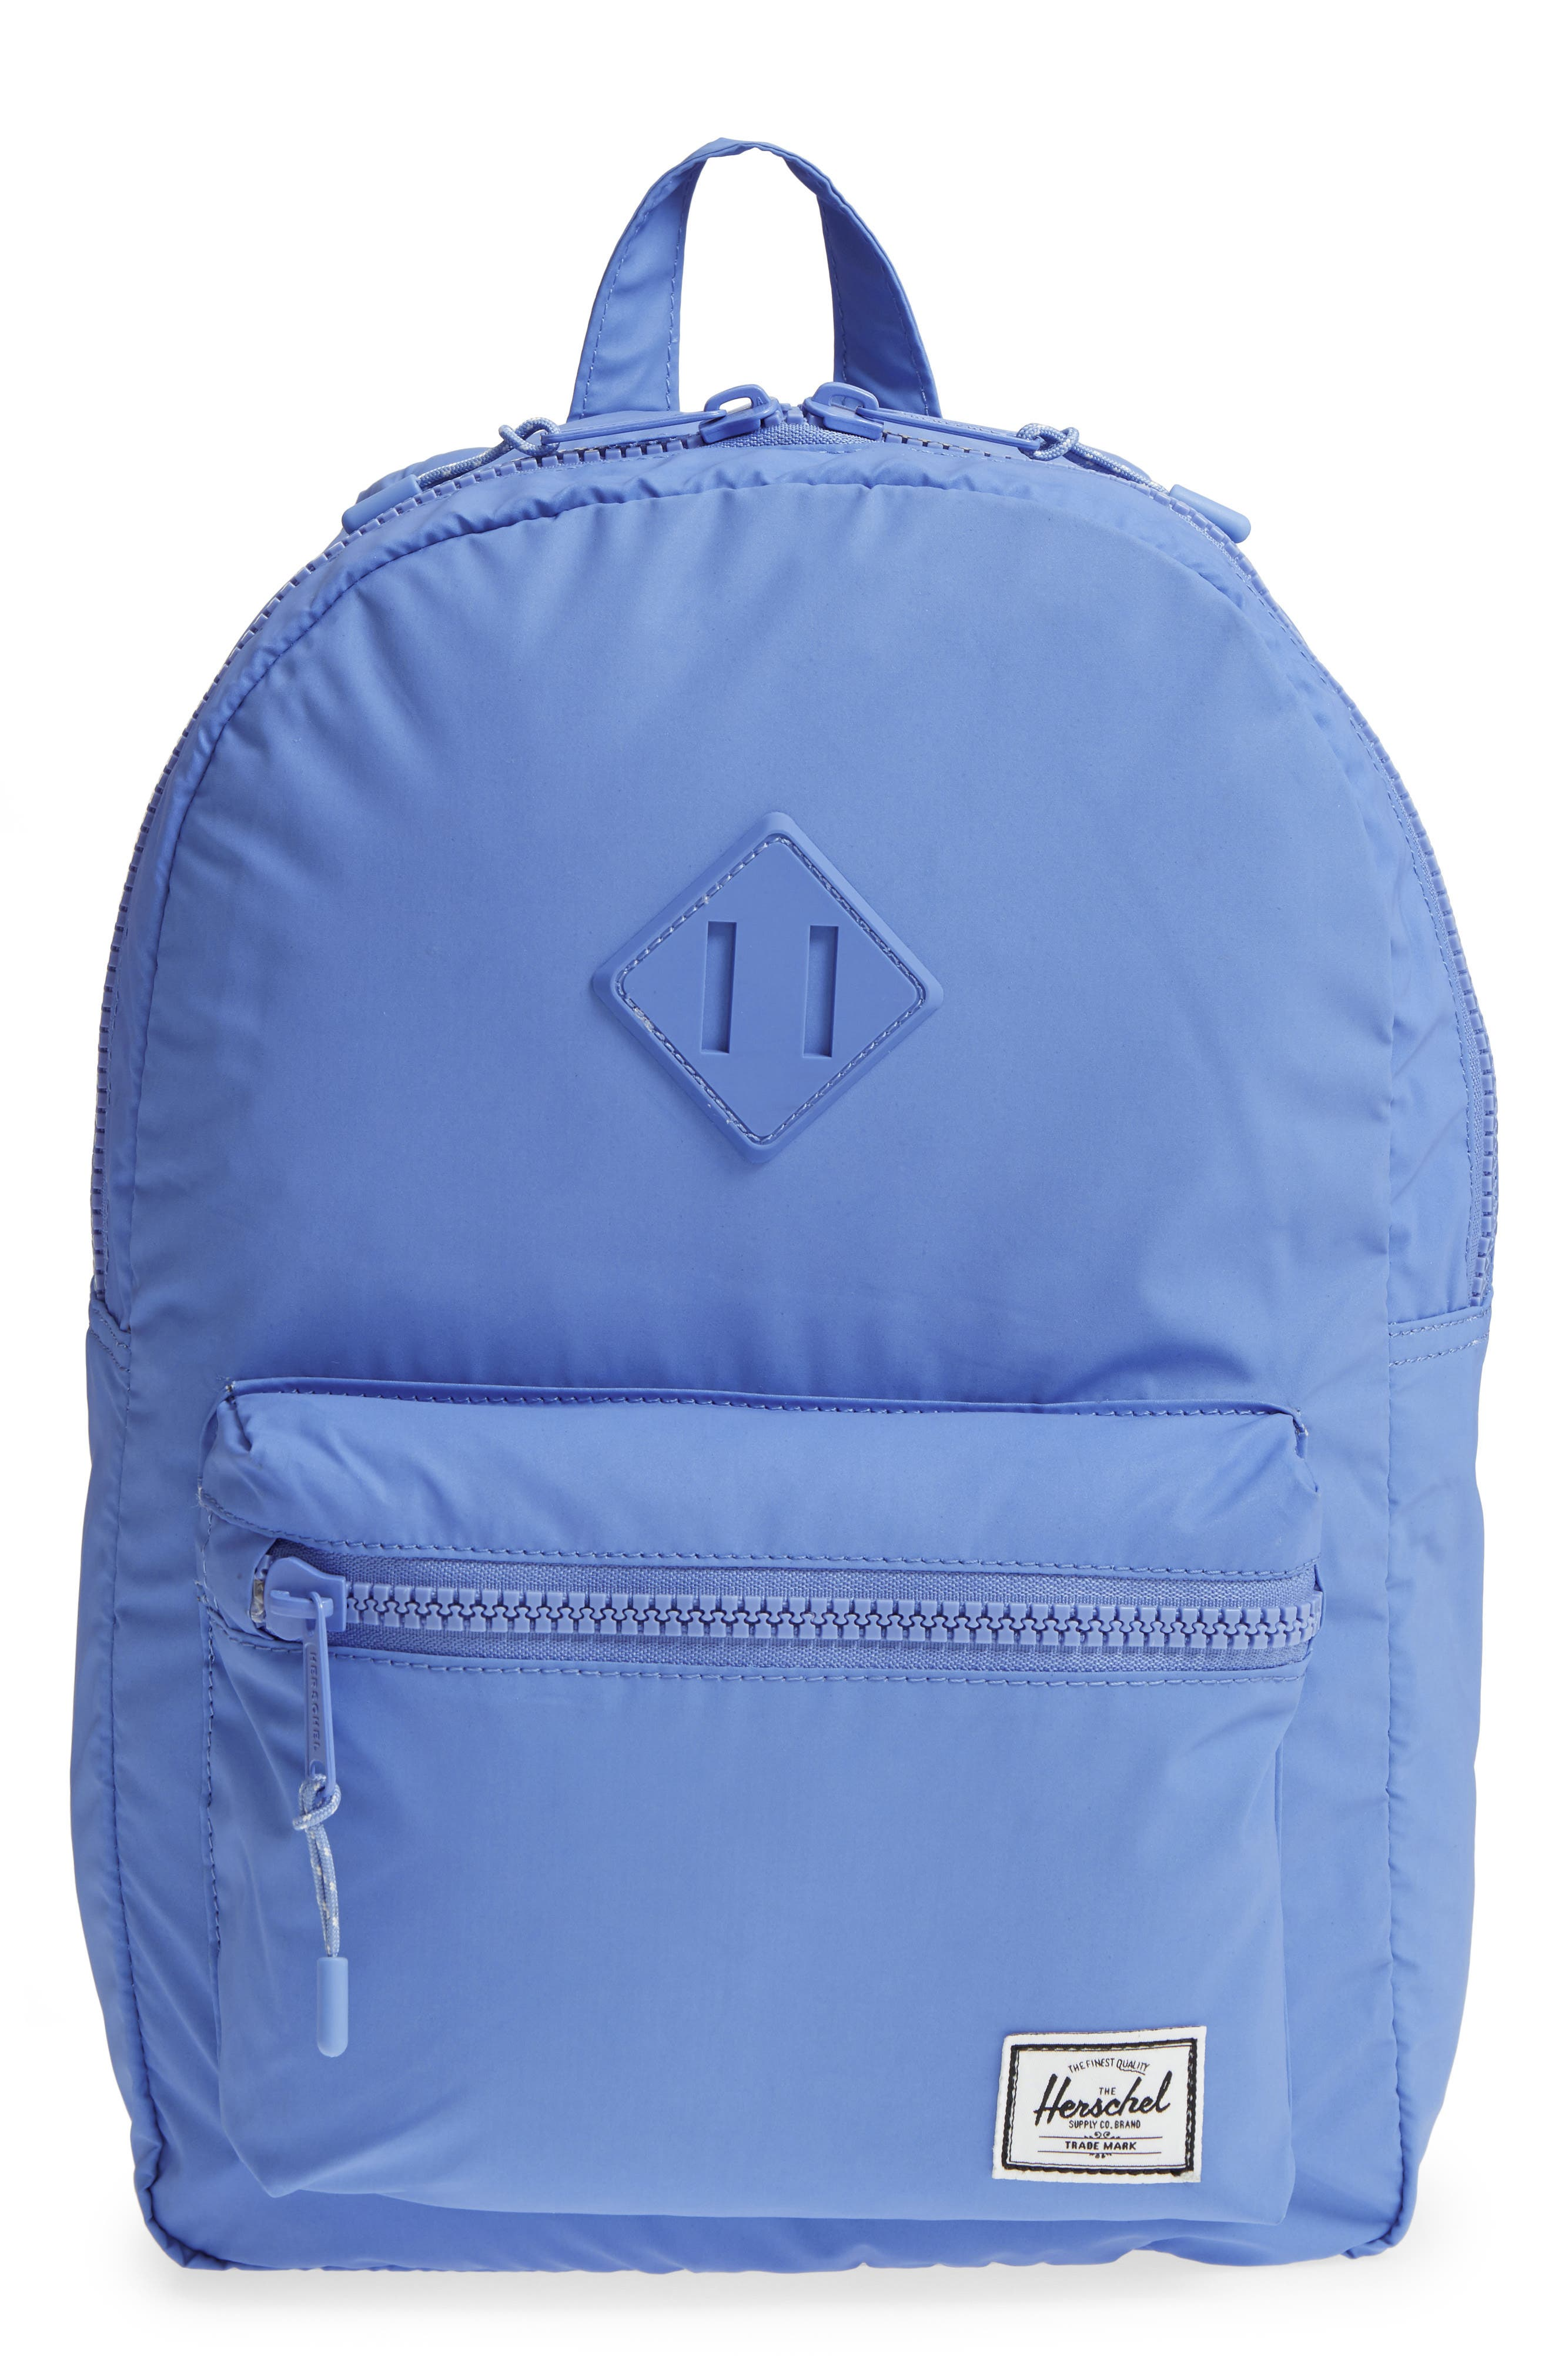 Heritage Backpack,                             Main thumbnail 1, color,                             400